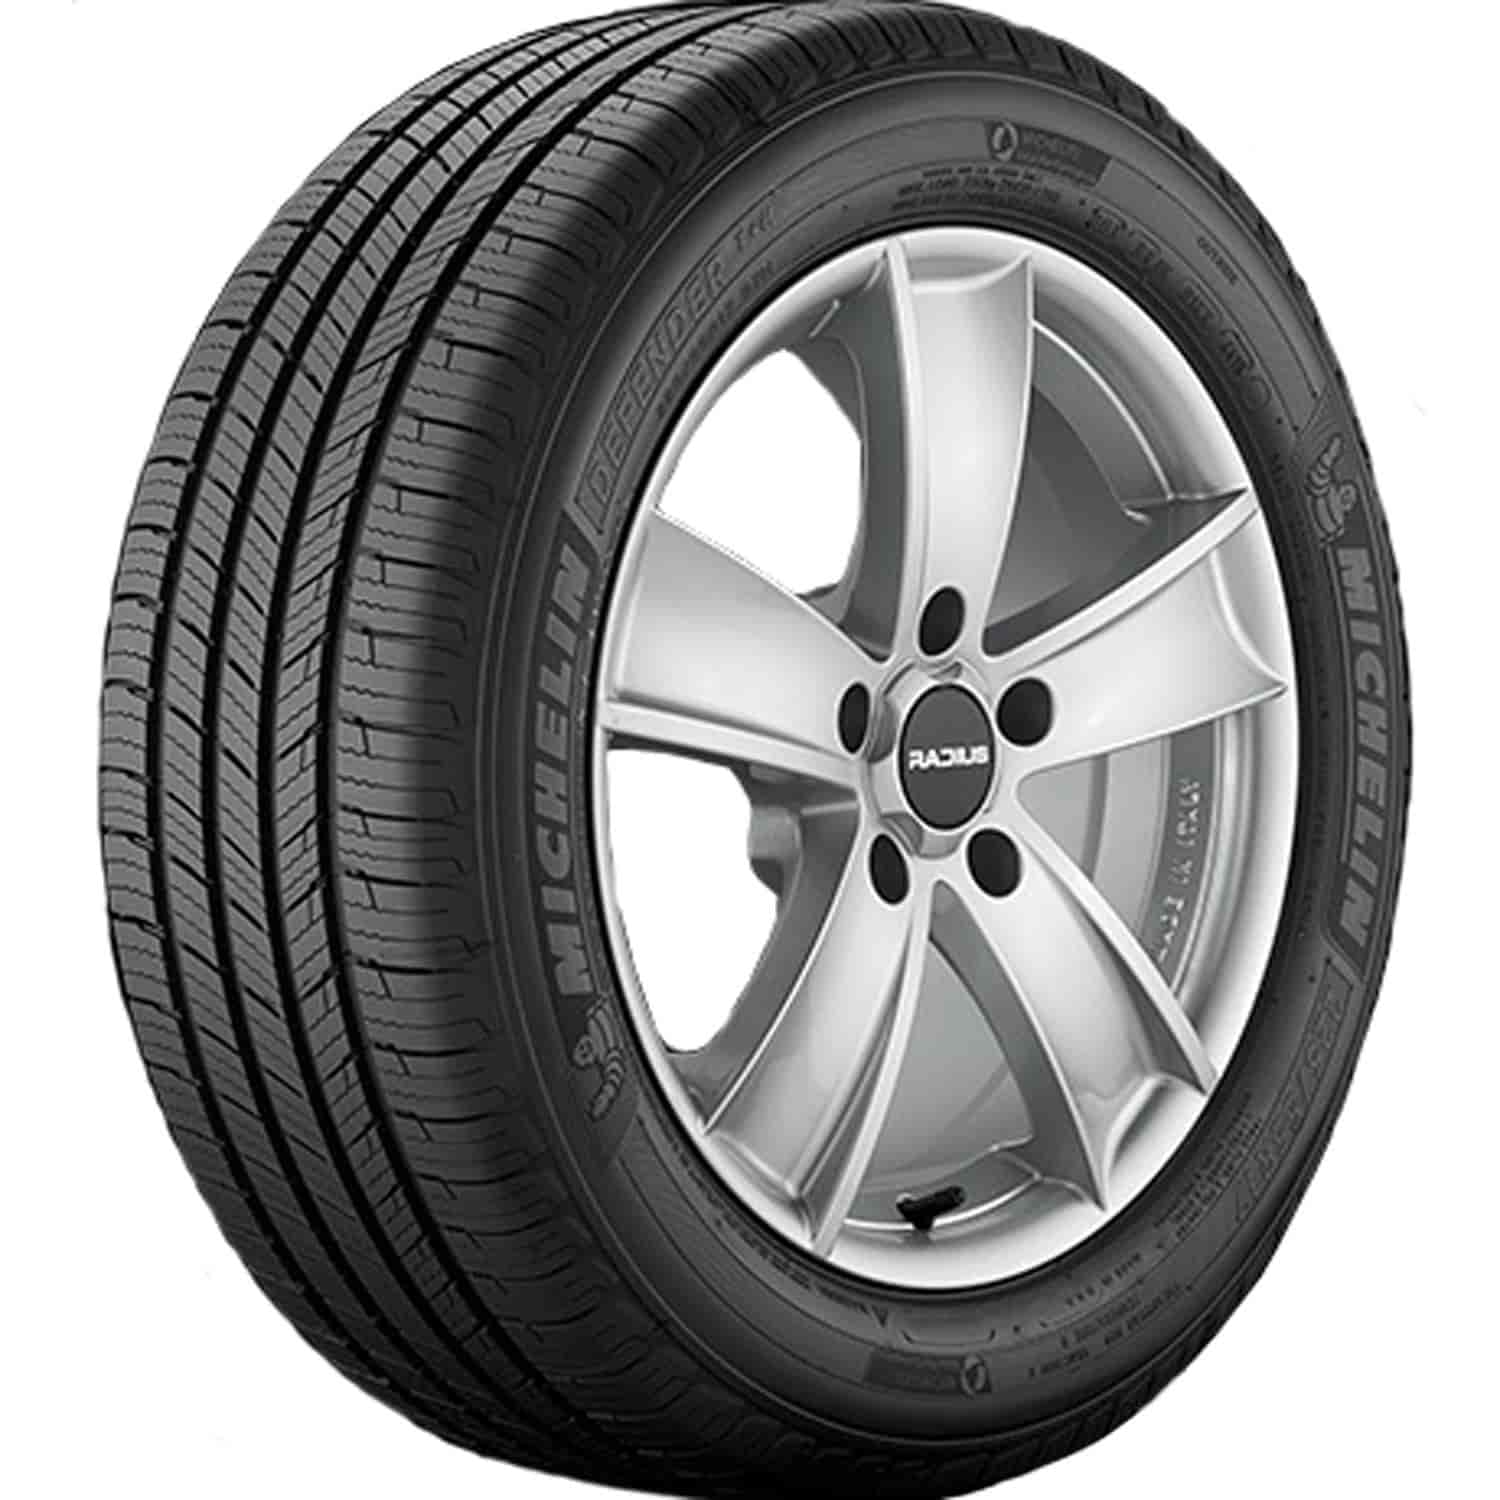 Michelin Defender T H >> Michelin 32073: Defender T+H Tire Size:225/50R17 | JEGS